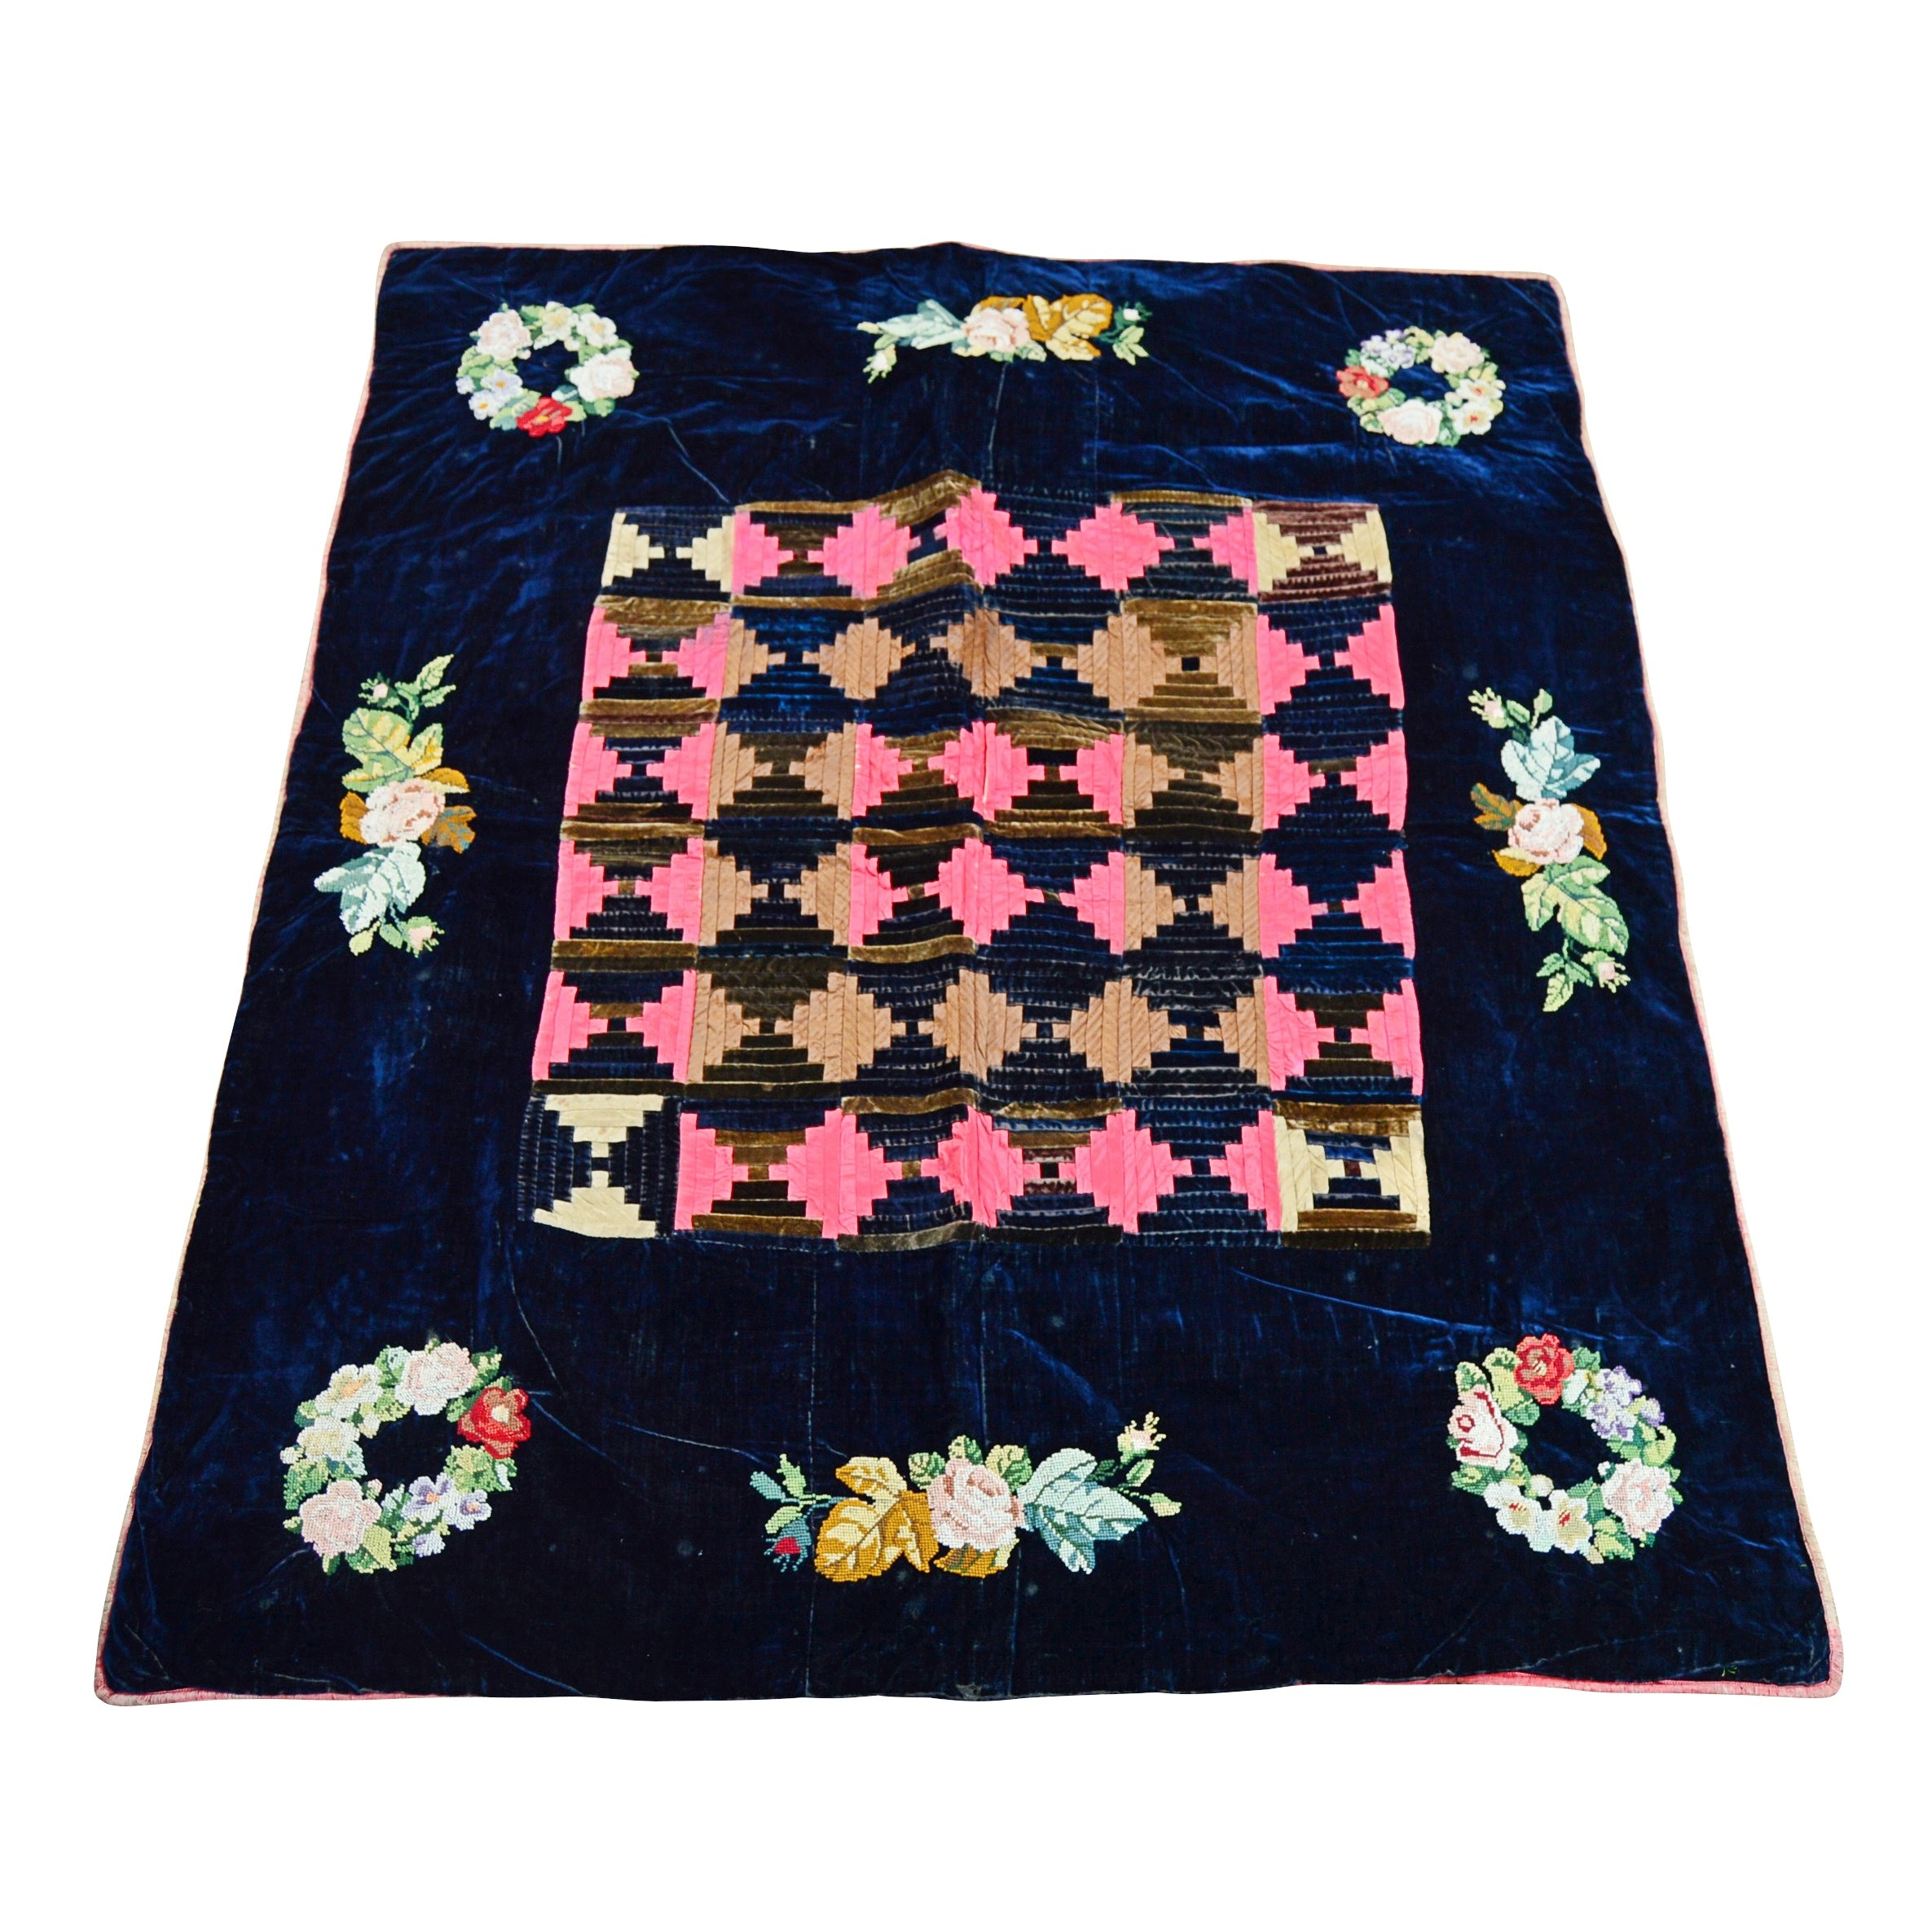 19th Century-Early 20th Century Hand-Stitched Velvet Quilt with Needlepoint